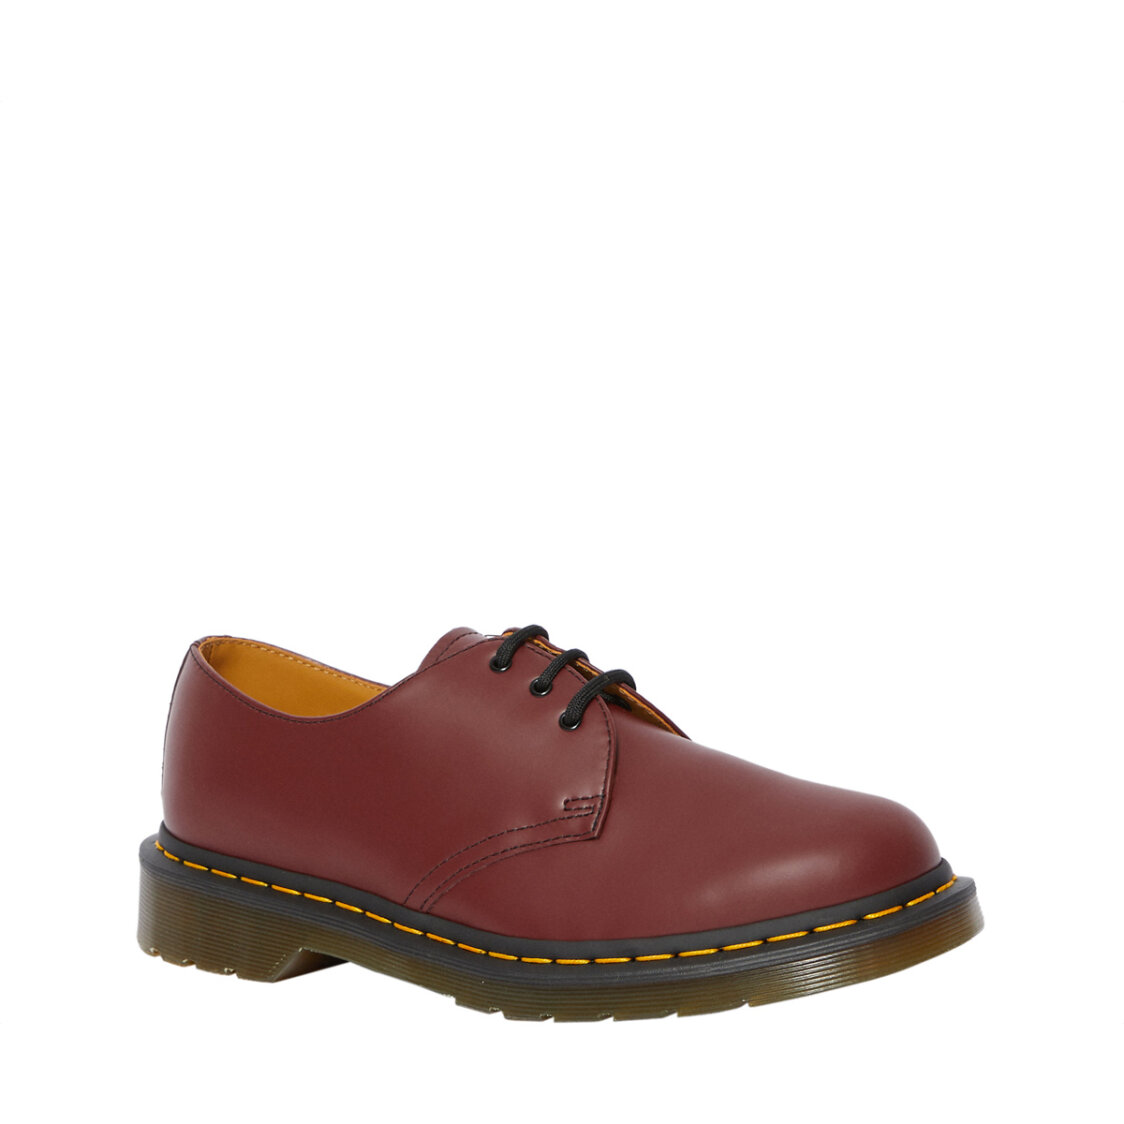 Dr Marten 1461 Smooth Leather Oxford Shoes